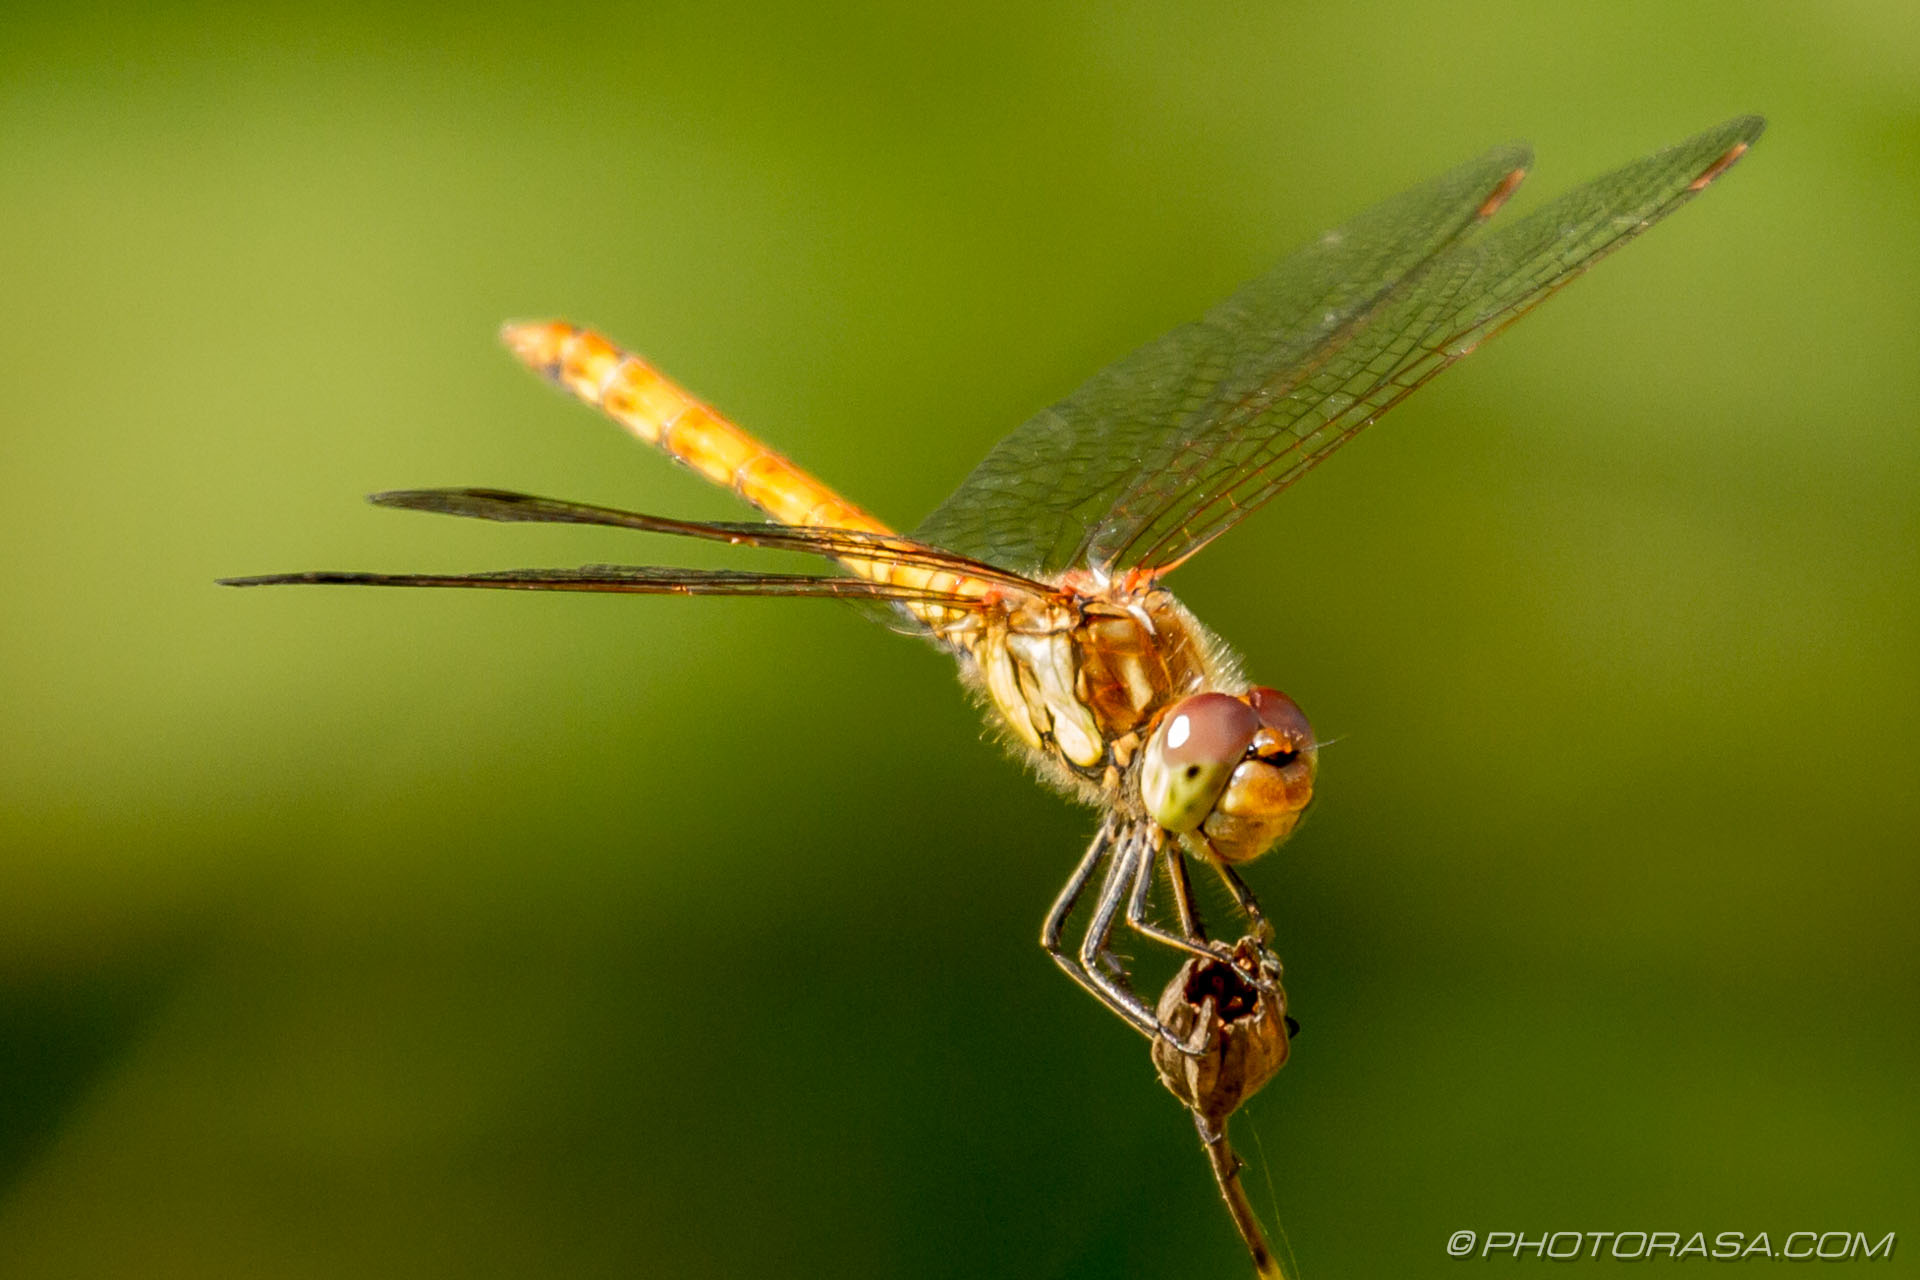 http://photorasa.com/dragonflies/female-common-darter-perched-on-flower/